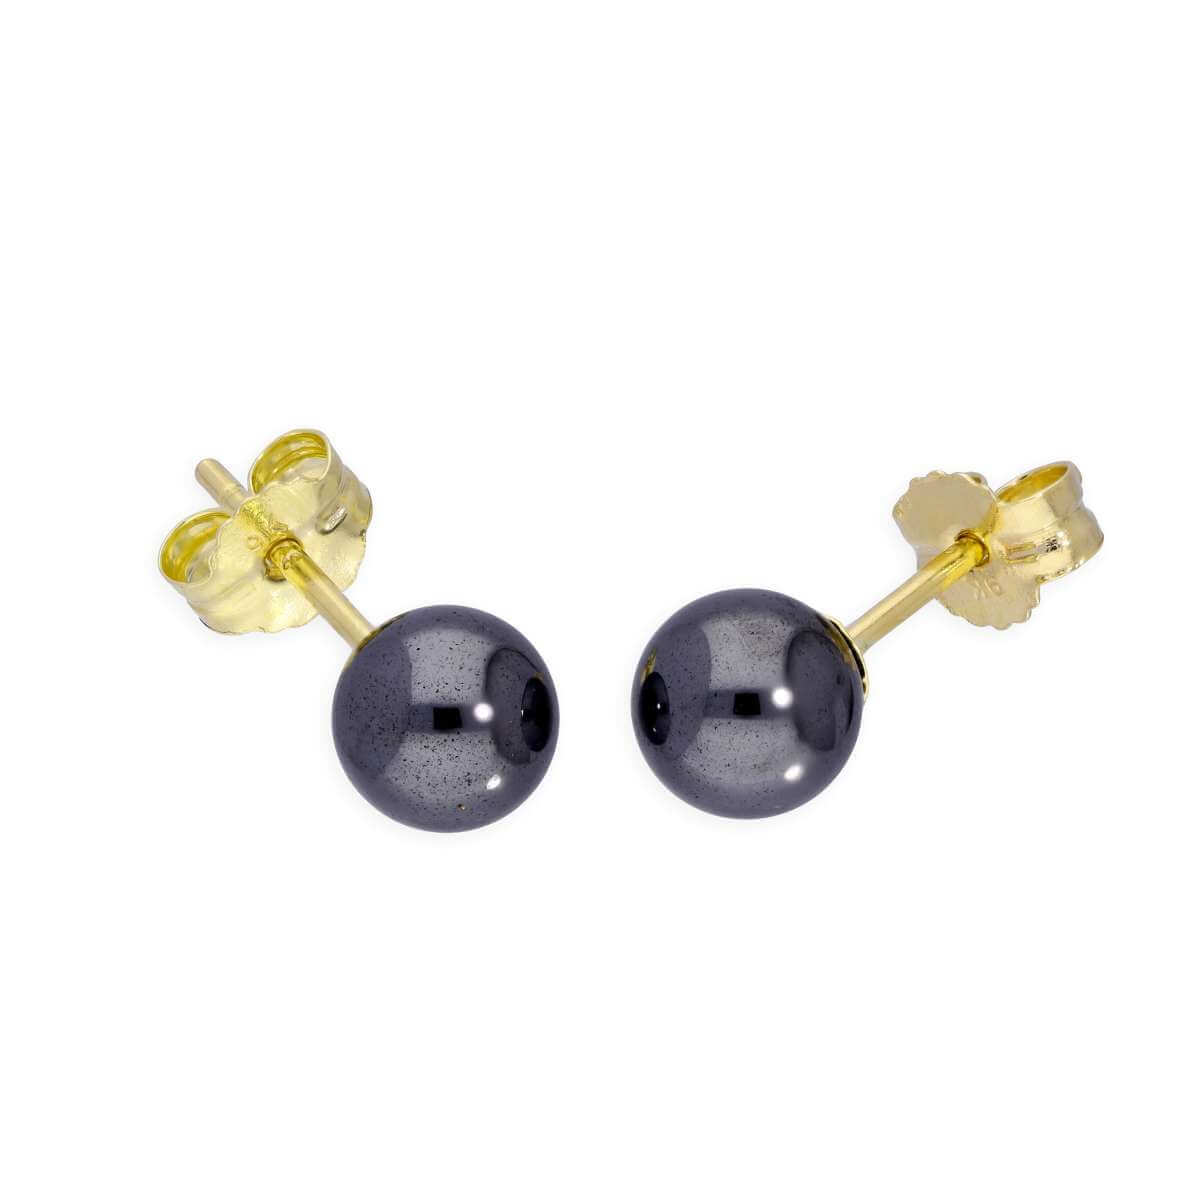 9ct Gold & 5mm Haematite Stud Earrings